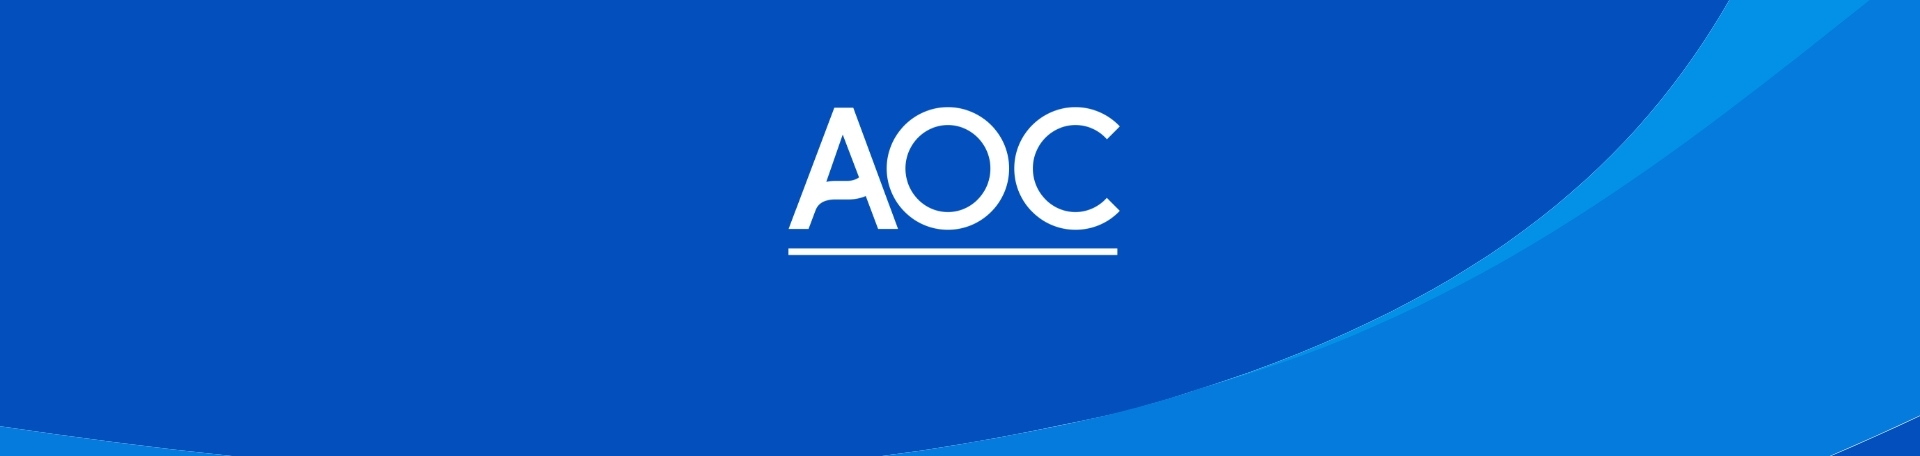 The Alpha Corporation, holding company of AOC, llc, agrees to be acquired by CVC Capital Partners fund vi